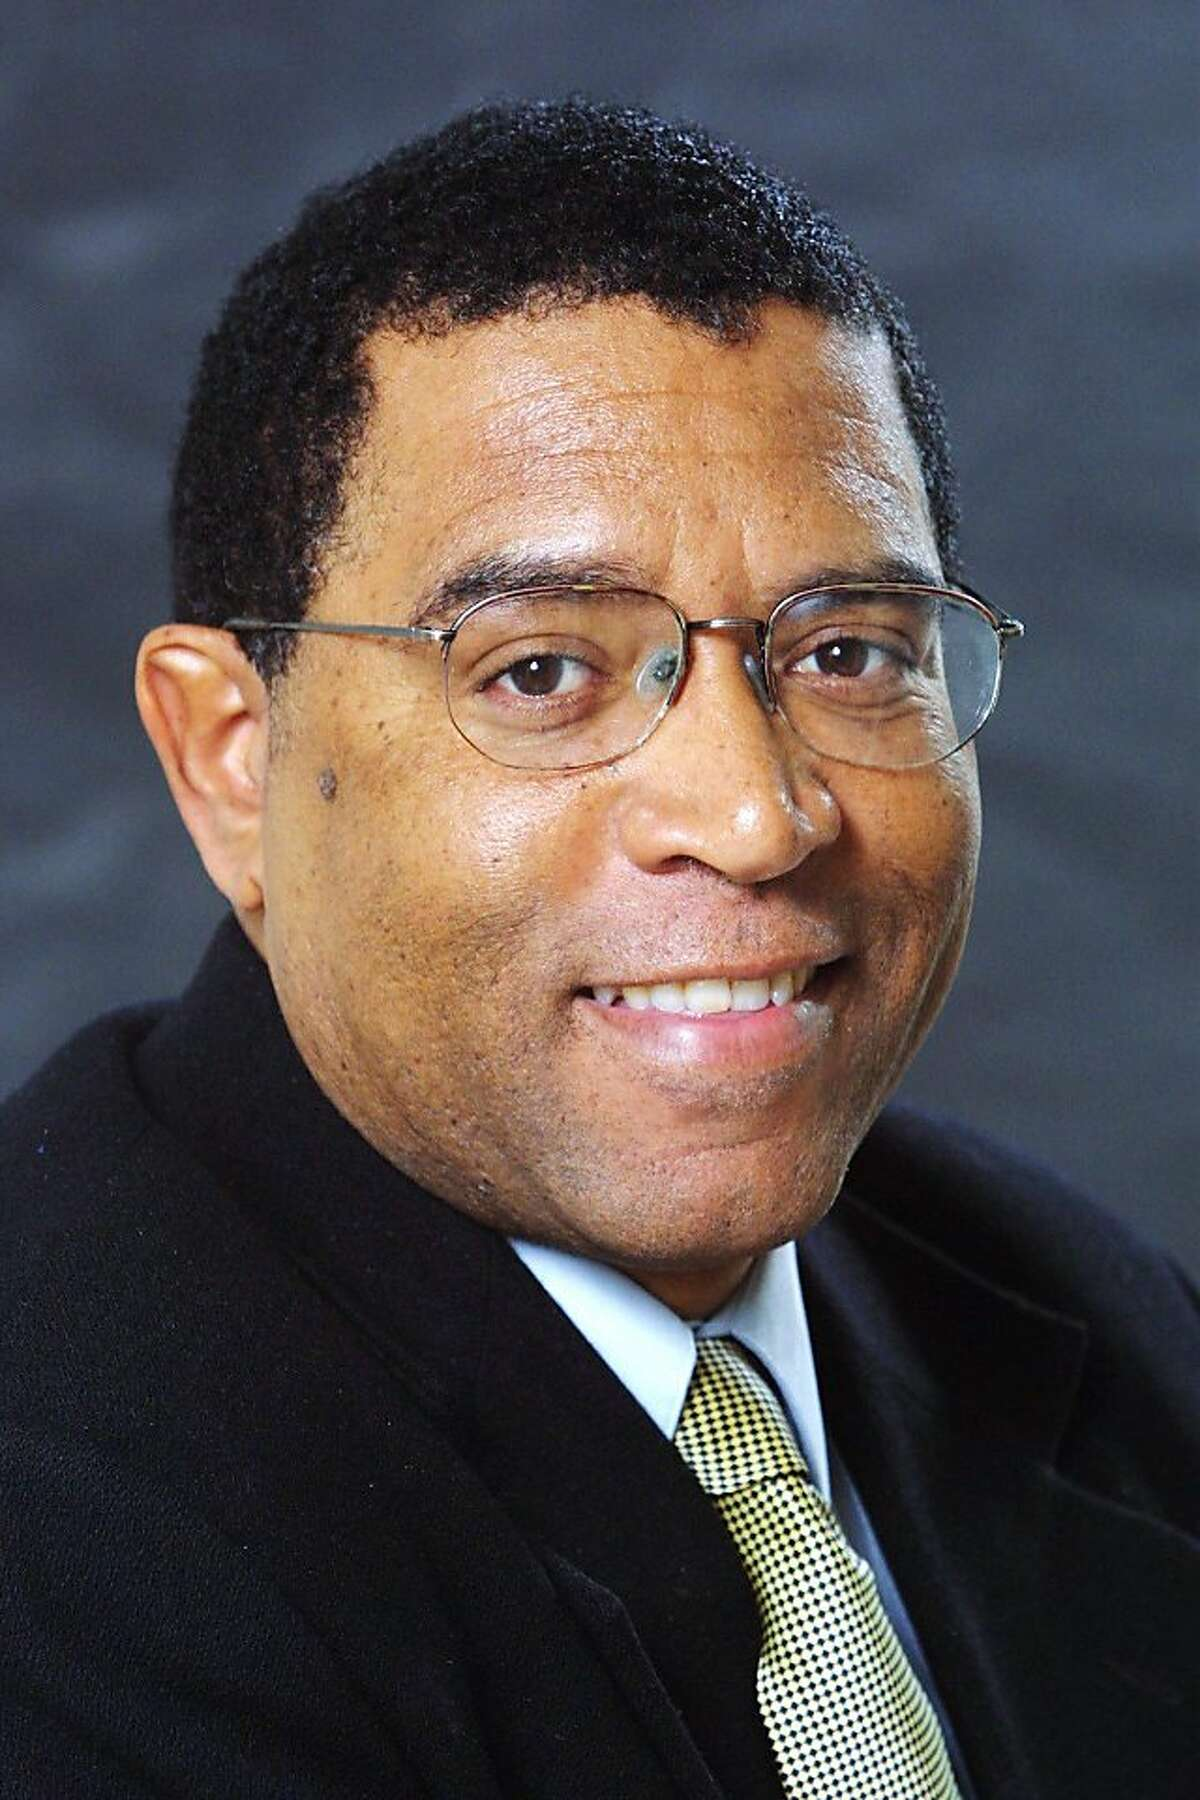 Former Oakland Tribune reporter Chauncey W. Bailey Jr. is seen in this undated file photo. Bailey, as editor of the weekly Oakland Post, was shot to death in Oakland, Calif., on Aug. 2, 2007, while investigating a Black Muslim splinter group's financial dealings. Bailey has been named the posthumous winner of the George Polk Award for local journalism, one of the top prizes in U.S. journalism. (AP Photo/Oakland Tribune) **NO SALES; MAGS OUT; MANDATORY CREDIT **